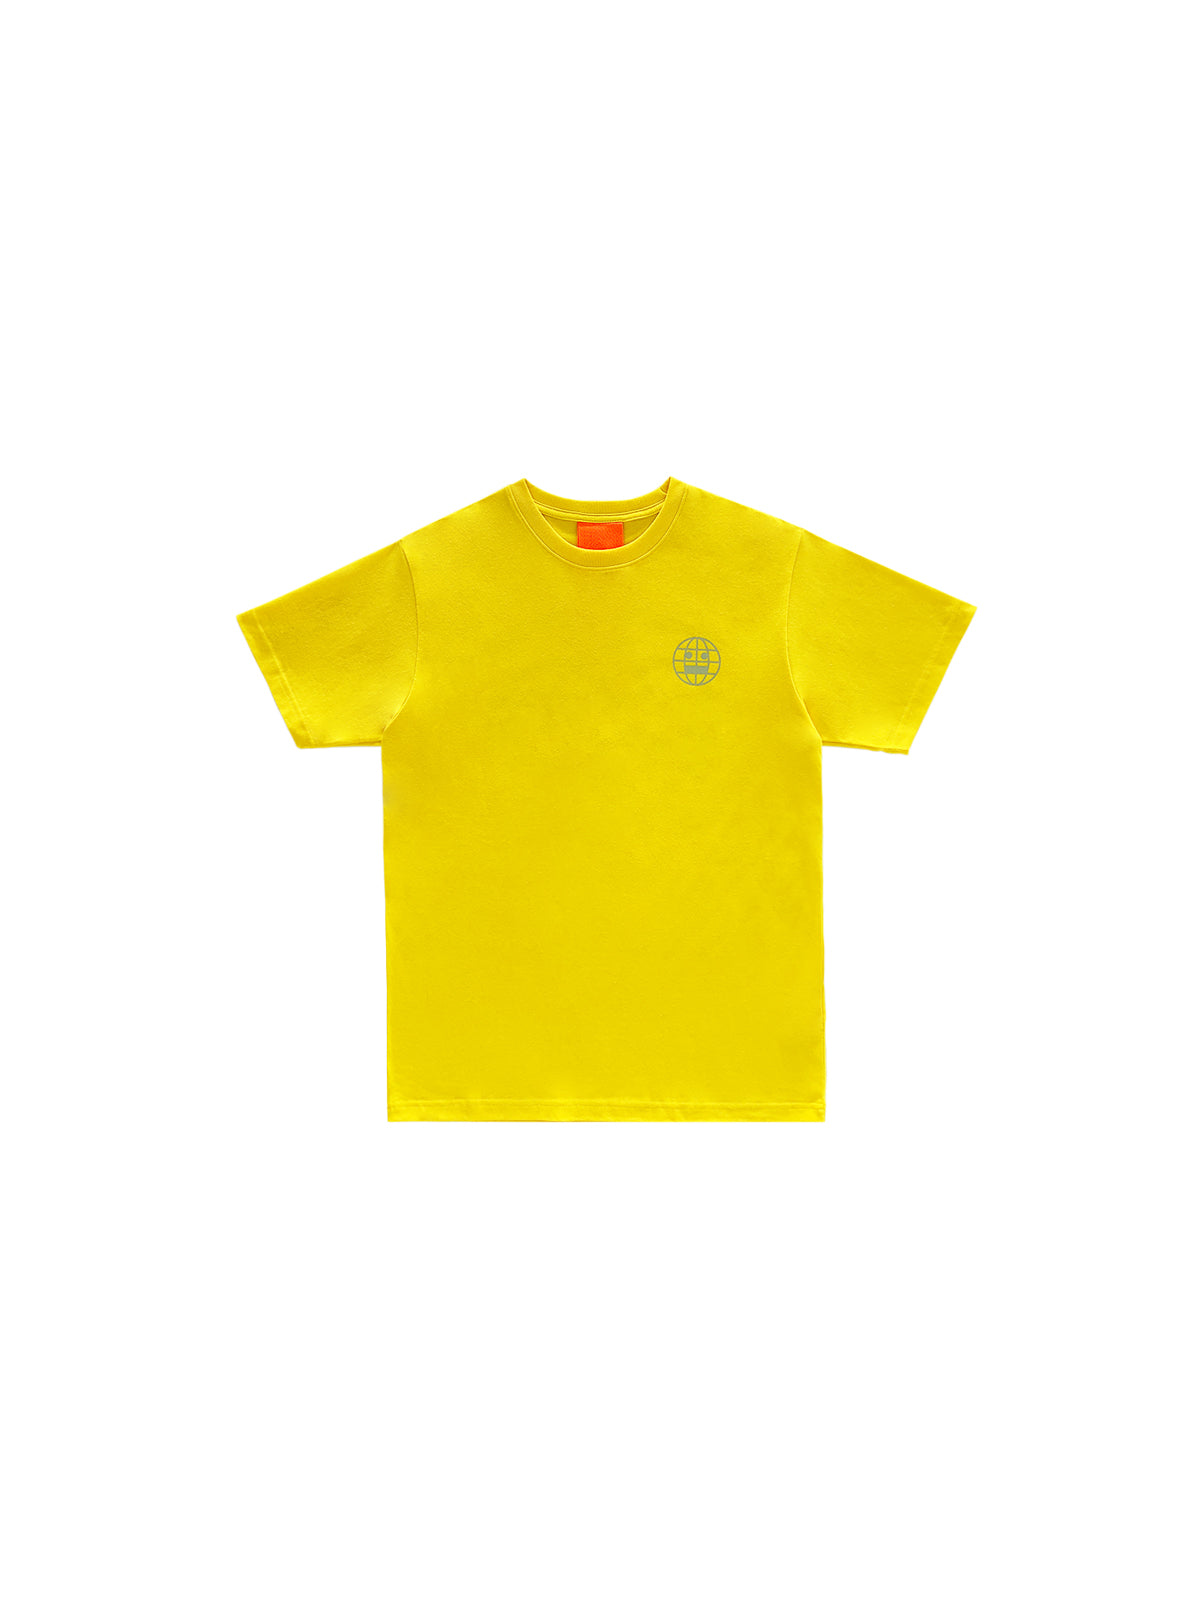 [ HOLIDAY PROJECT ] PLASTIC REDUCTION T SHIRT